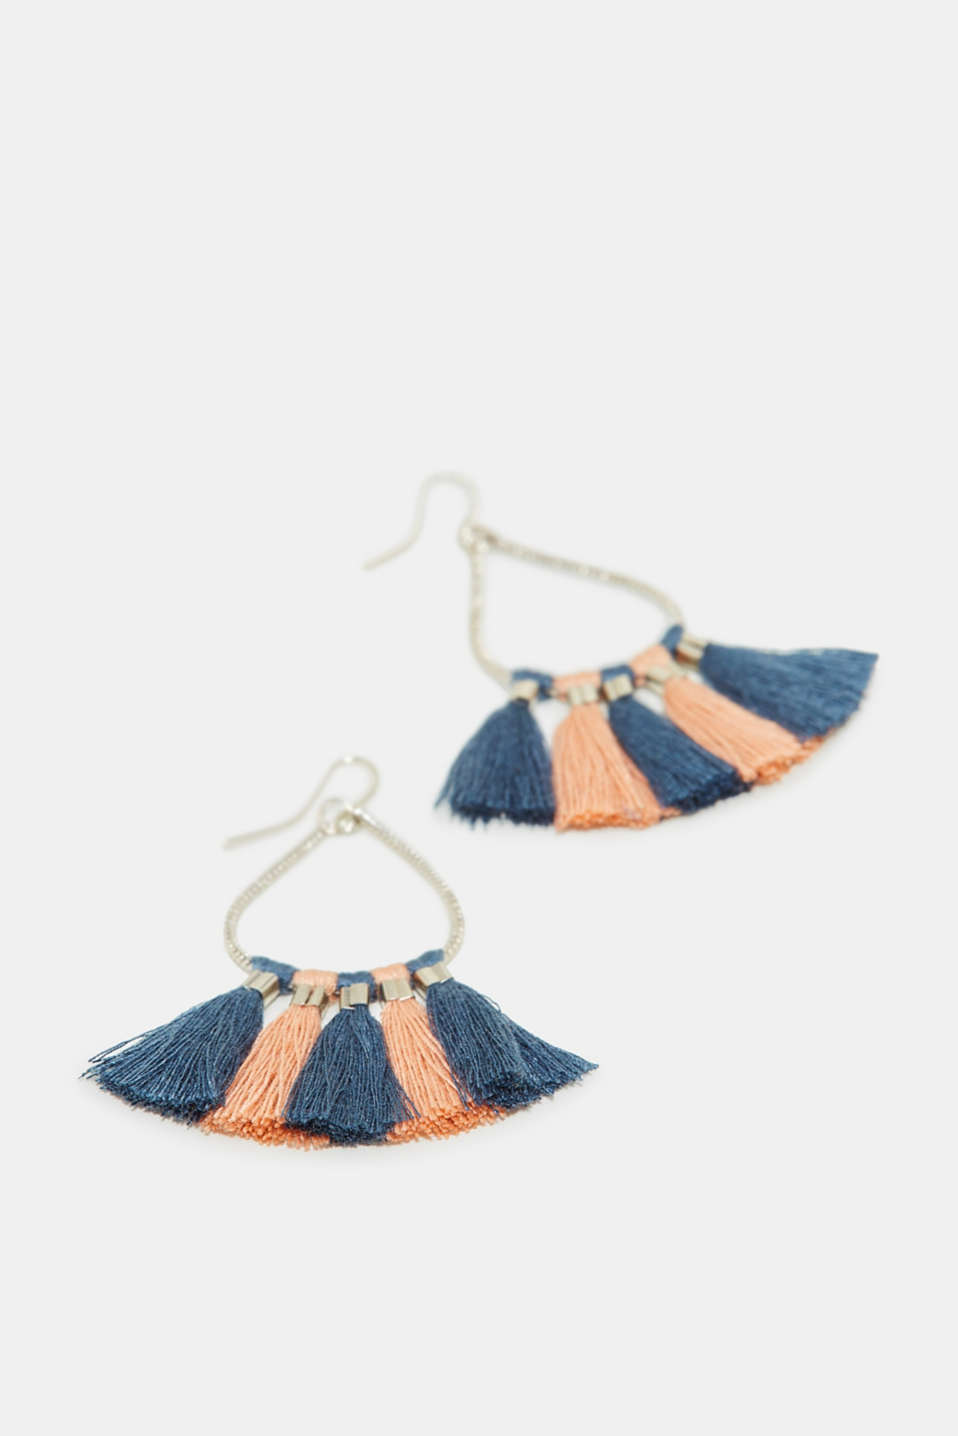 These earrings catch the eye thanks to striking tassels.